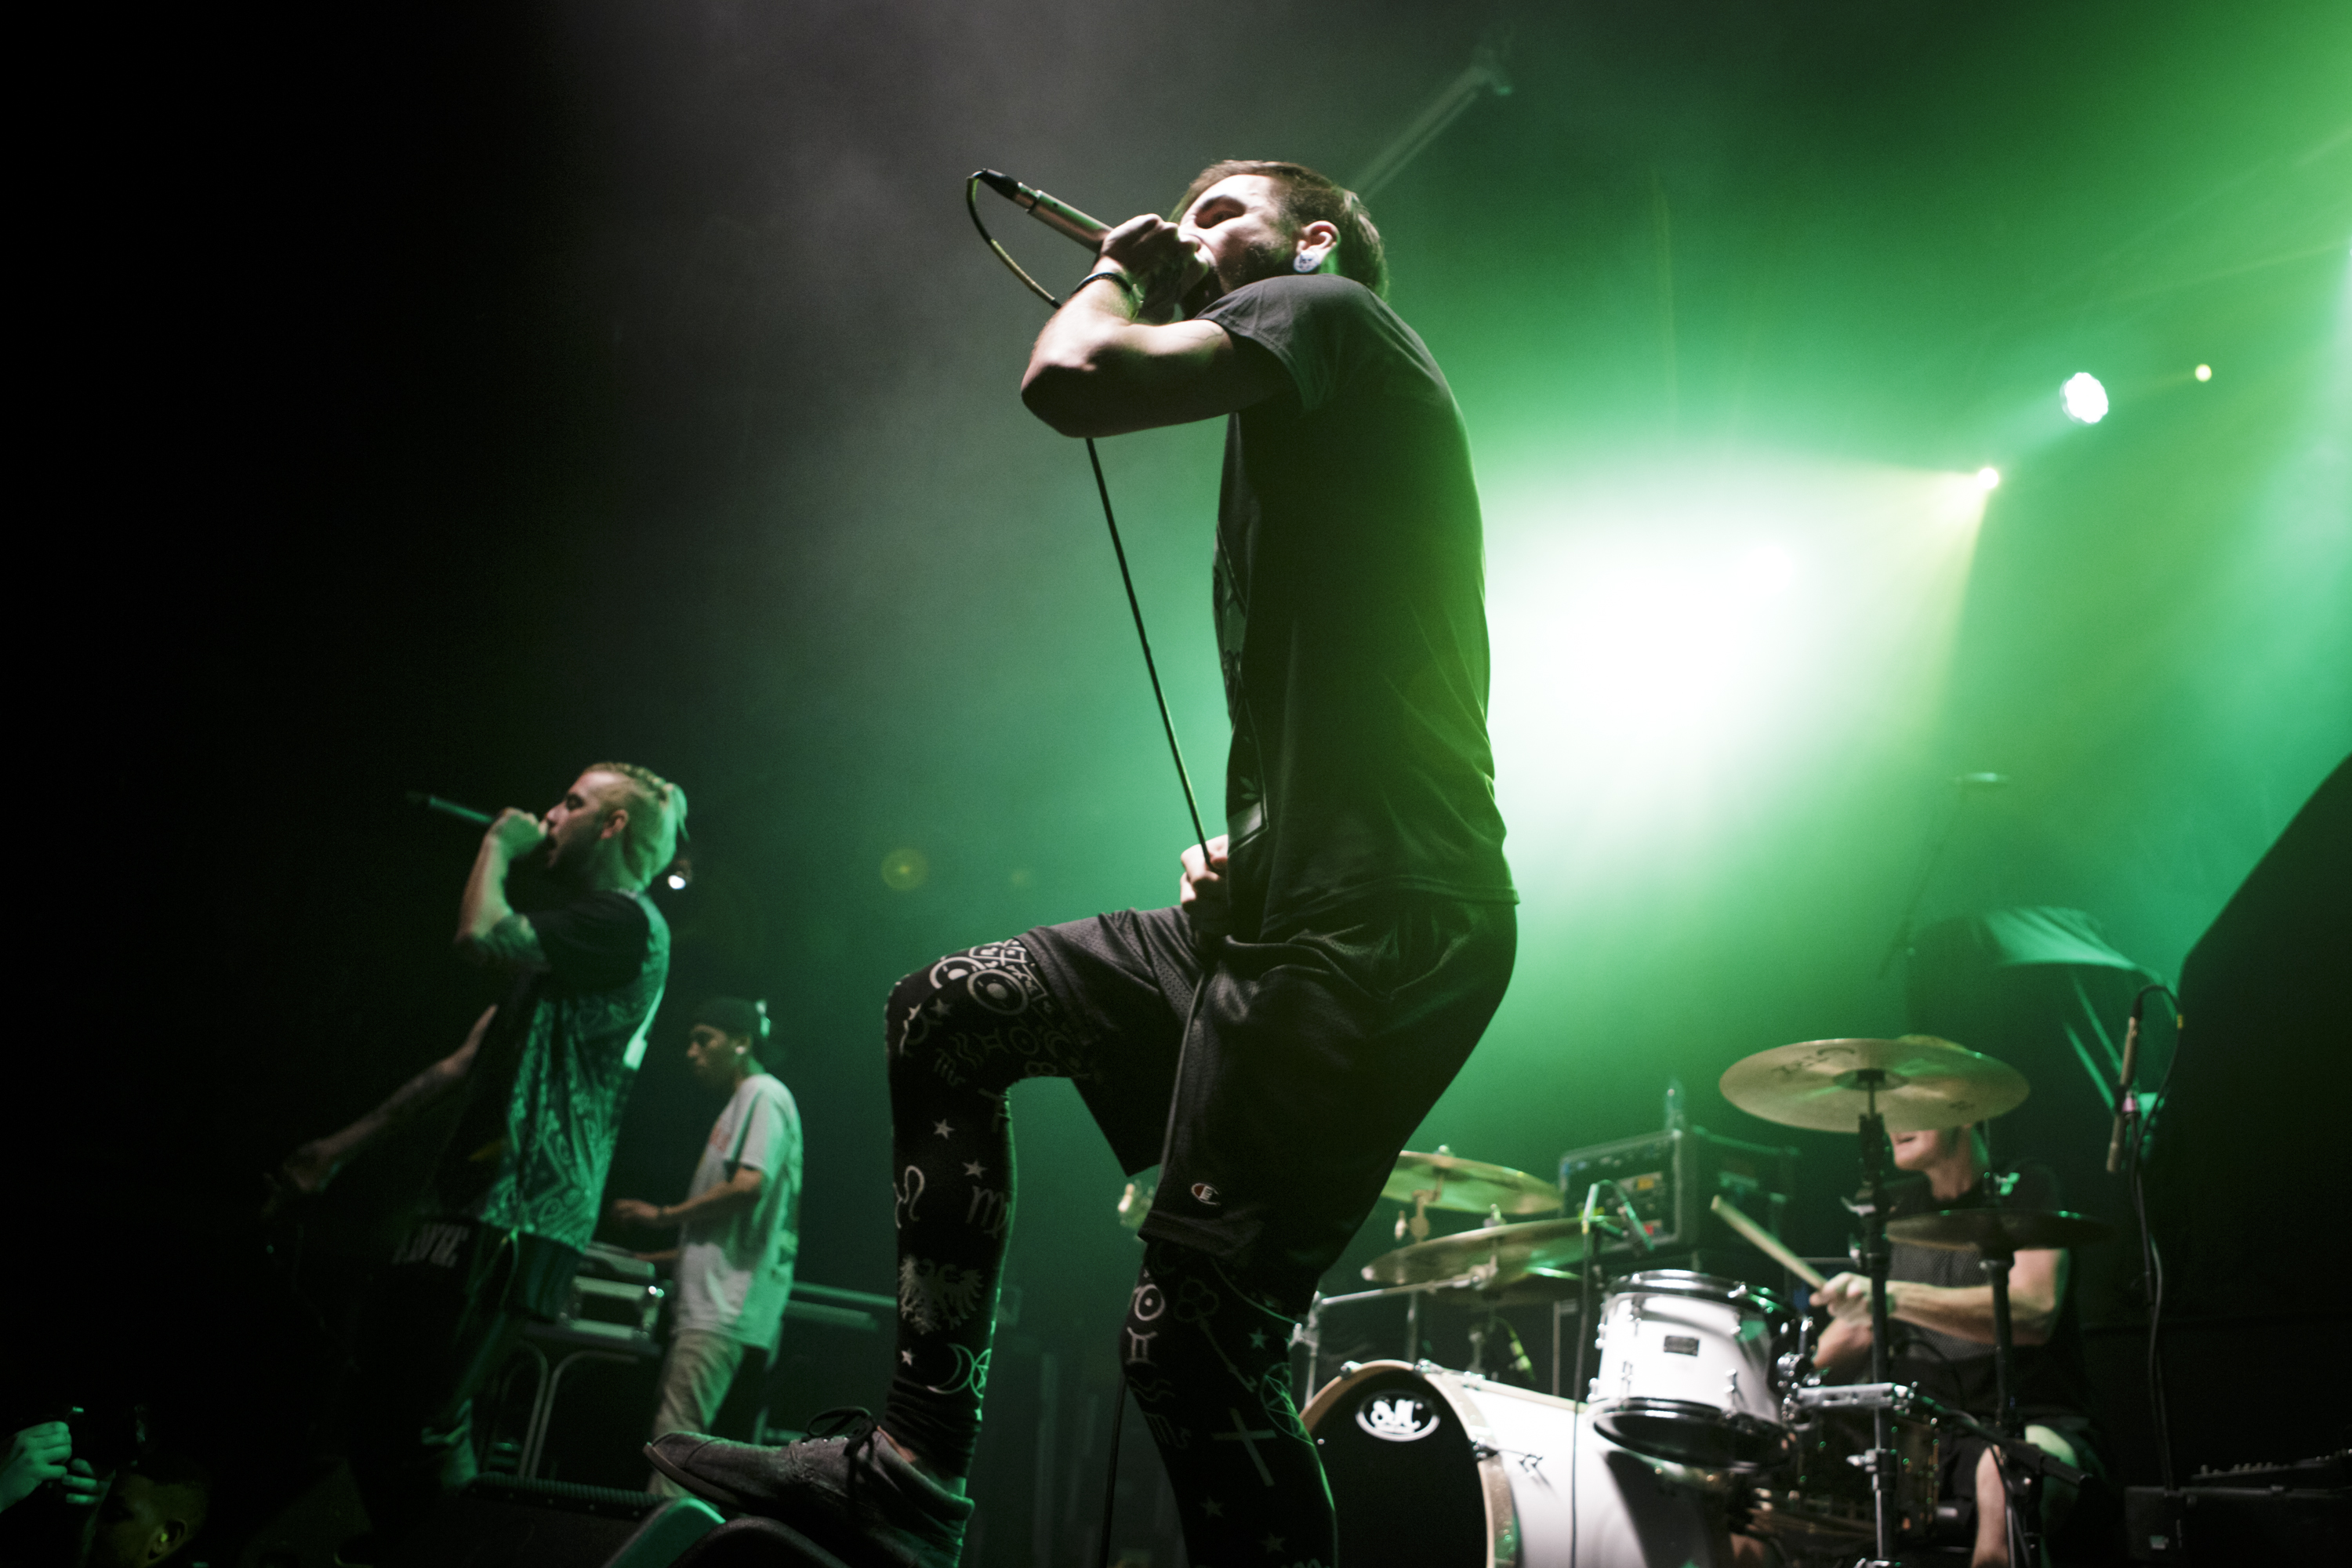 Tyler Carter and Michael Bohn of Issues perform on stage at The Ritz, Manchester on April 19, 2014 in Manchester, United Kingdom